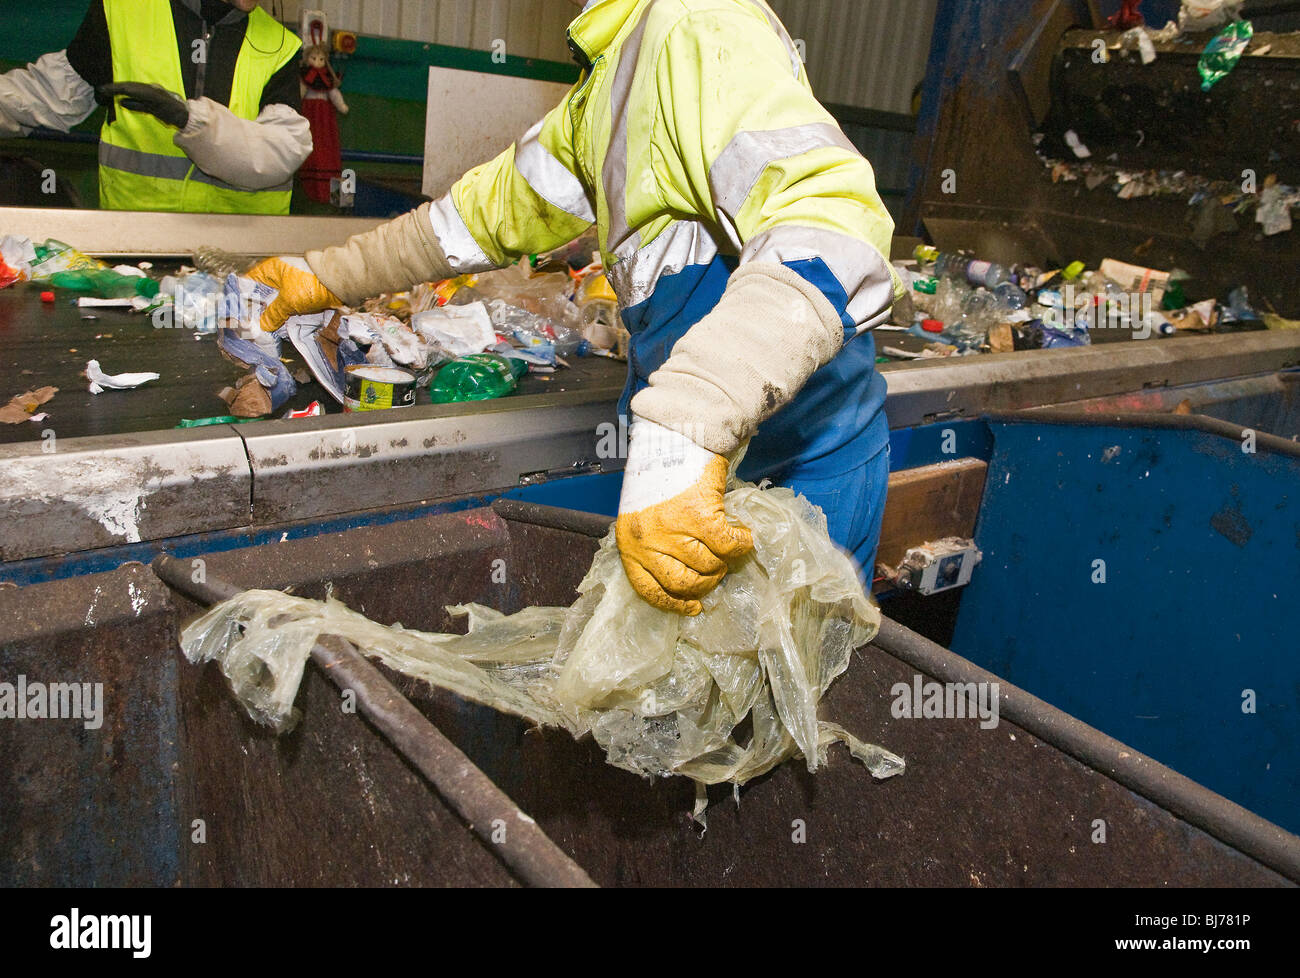 Recyclable waste sorting center. Employees on each side of the conveyor belt manually sort the different types of - Stock Image